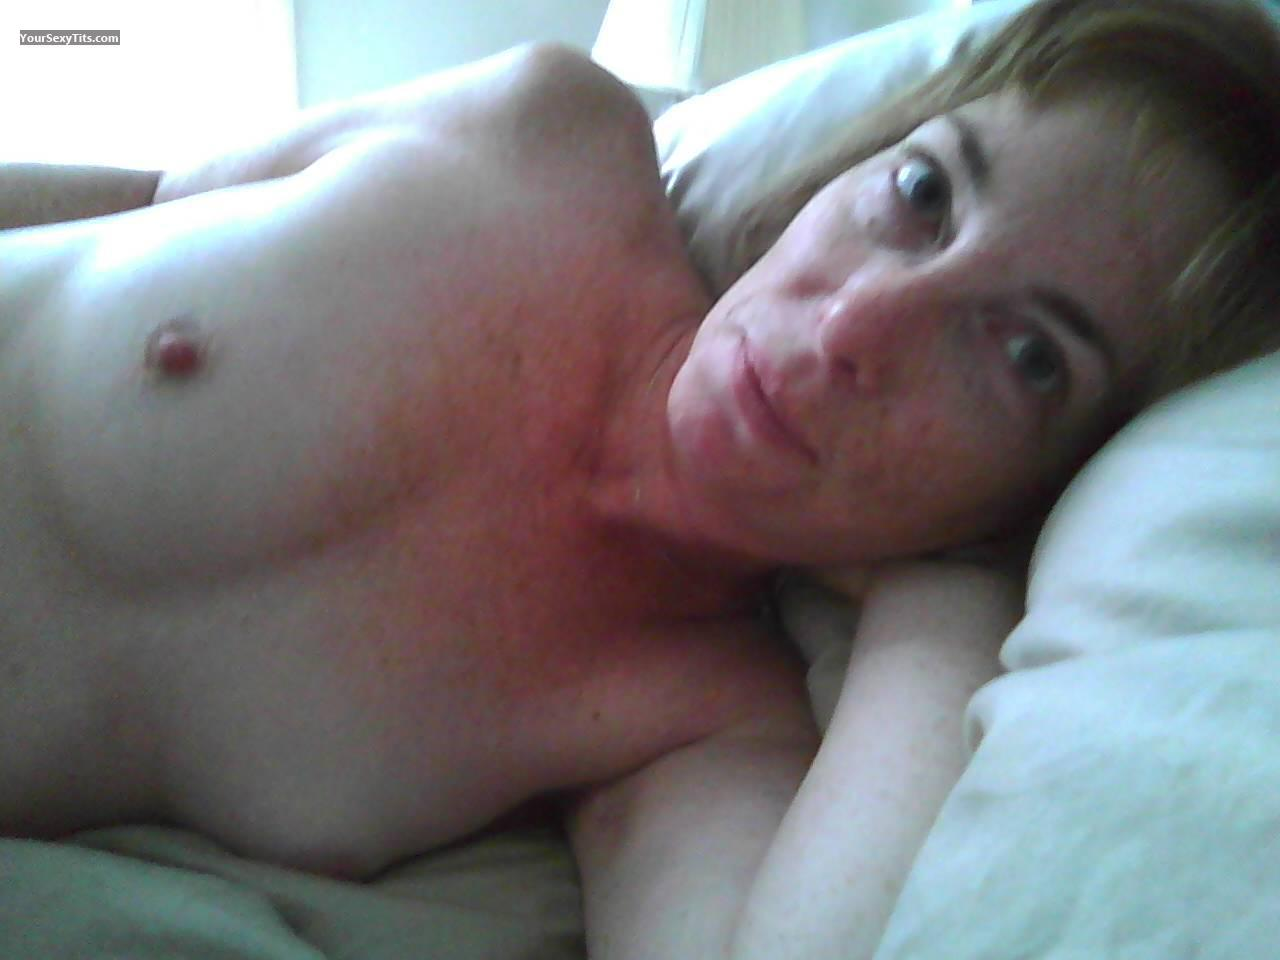 Tit Flash: Very Small Tits - Topless Addie from United States